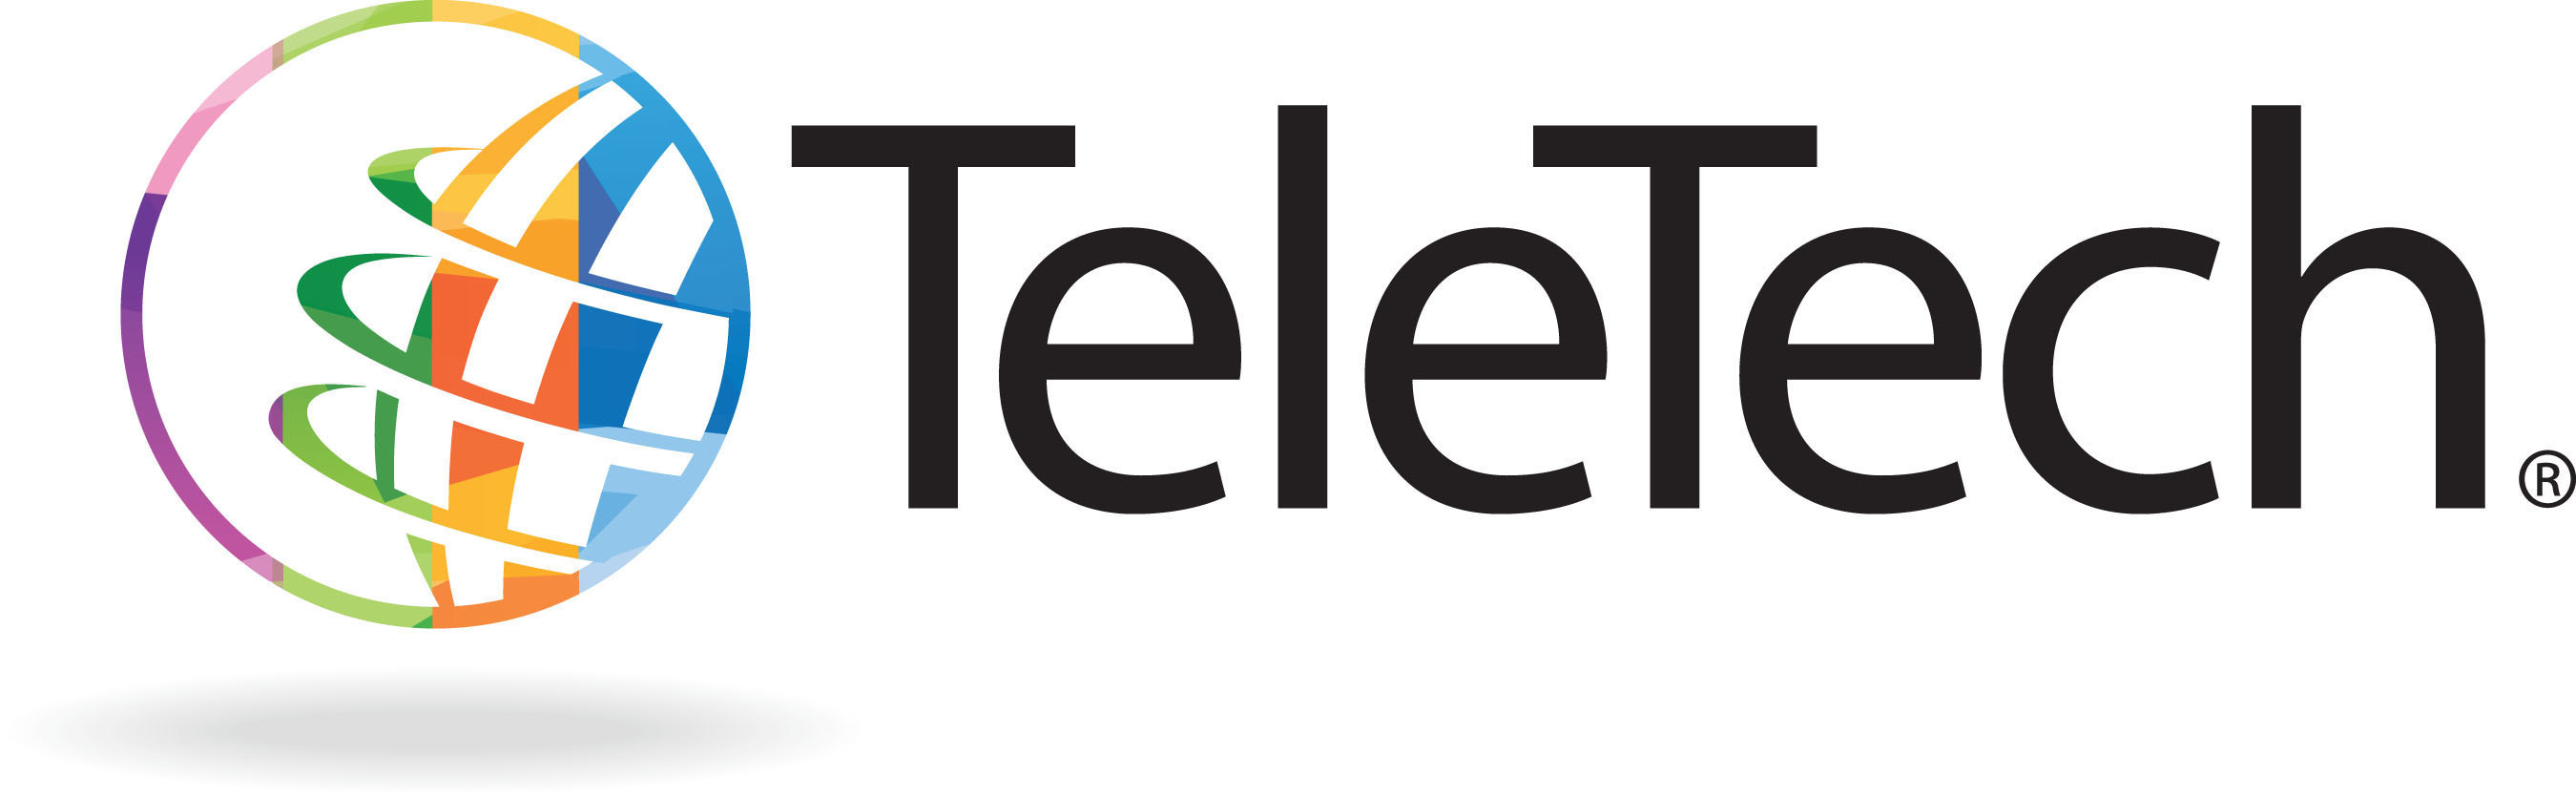 TeleTech Partners with Strayer@Work to Offer Kentucky Customer Experience Center Employees Low-Cost